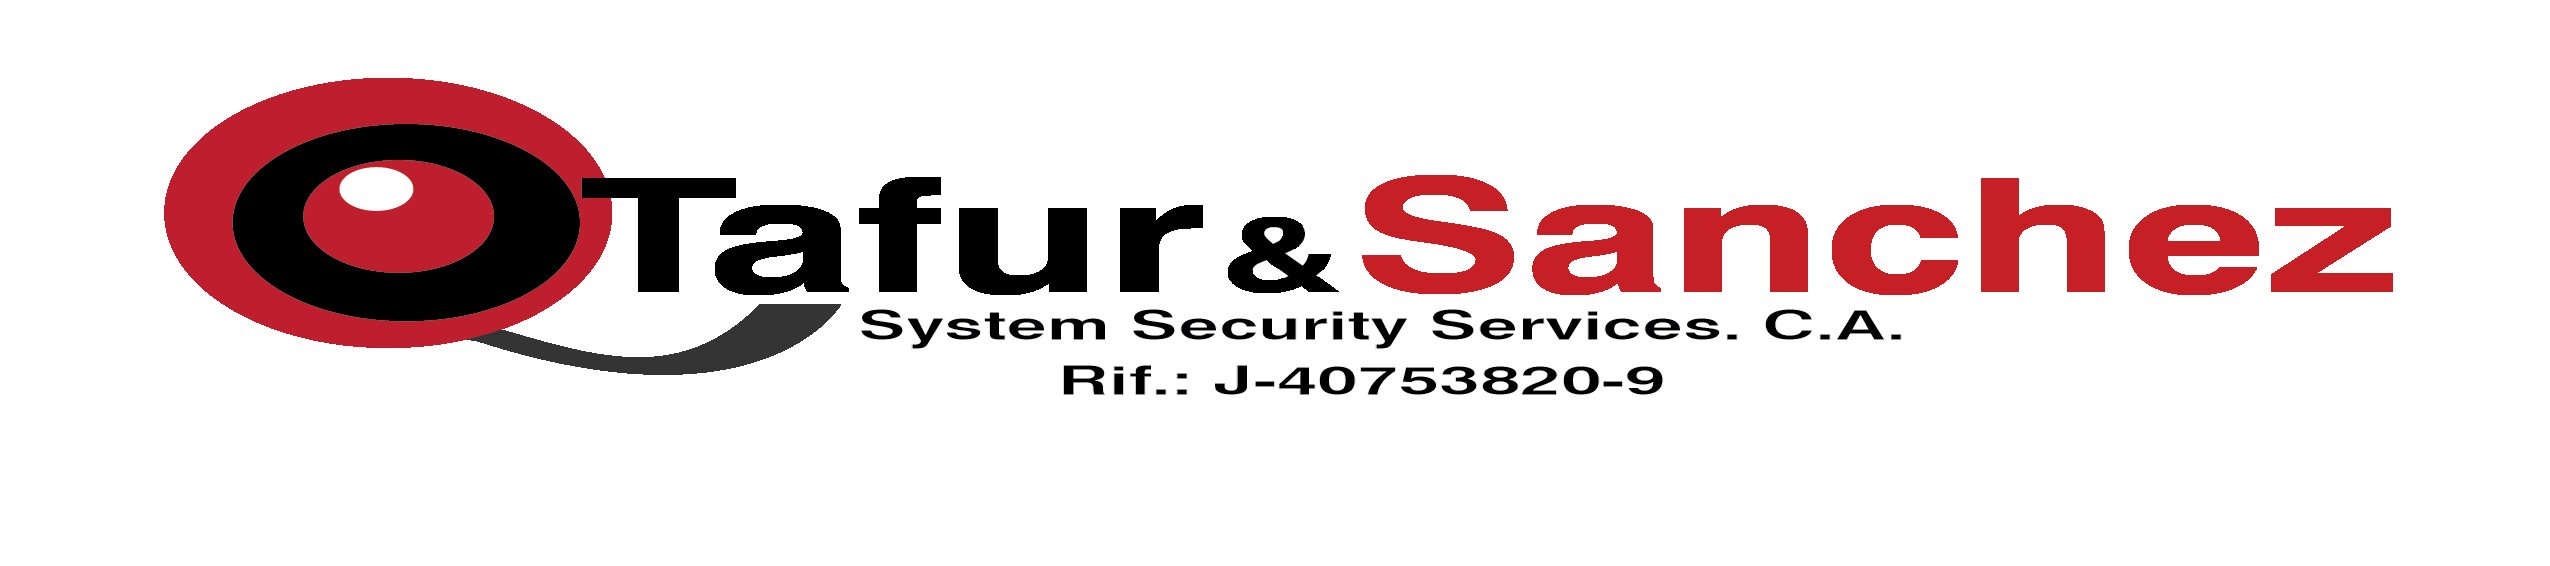 Tafur & Sanchez System Security Services, C.A